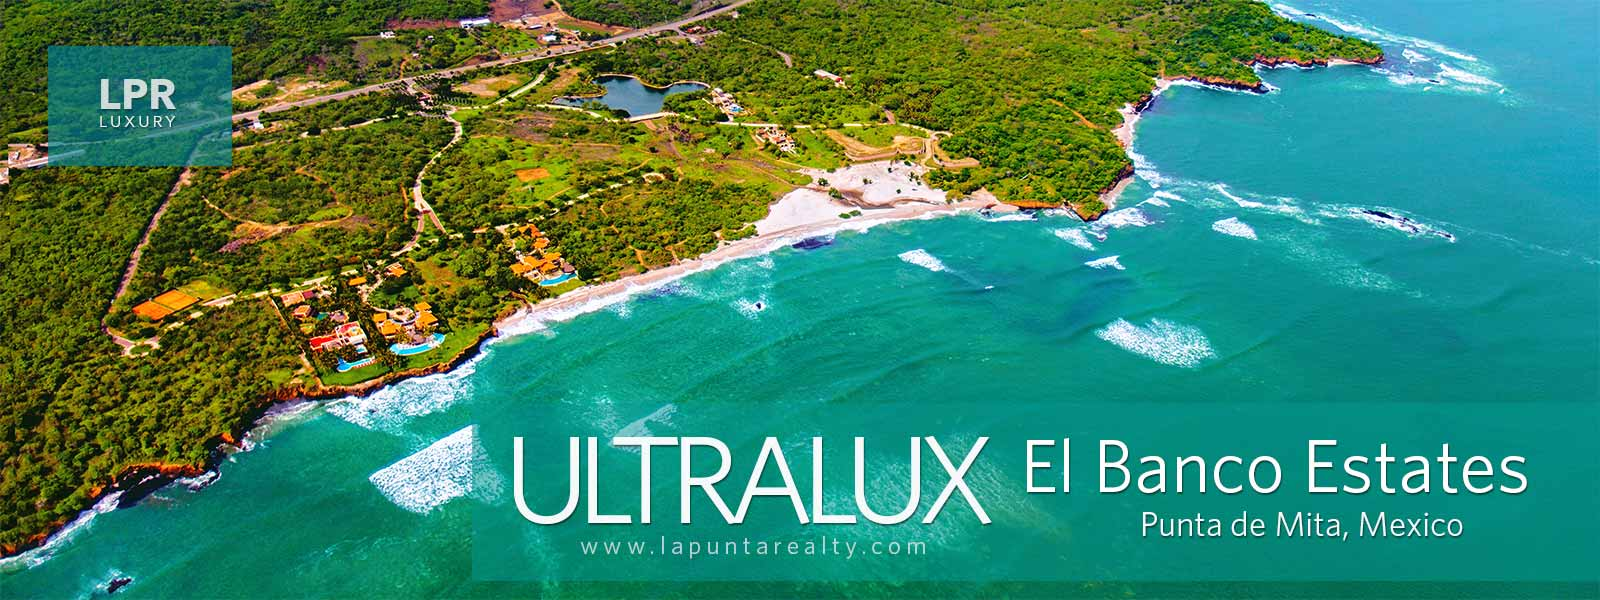 El Banco Estates - Luxury Punta de Mita Real Estate and Vacation Villa Rentals